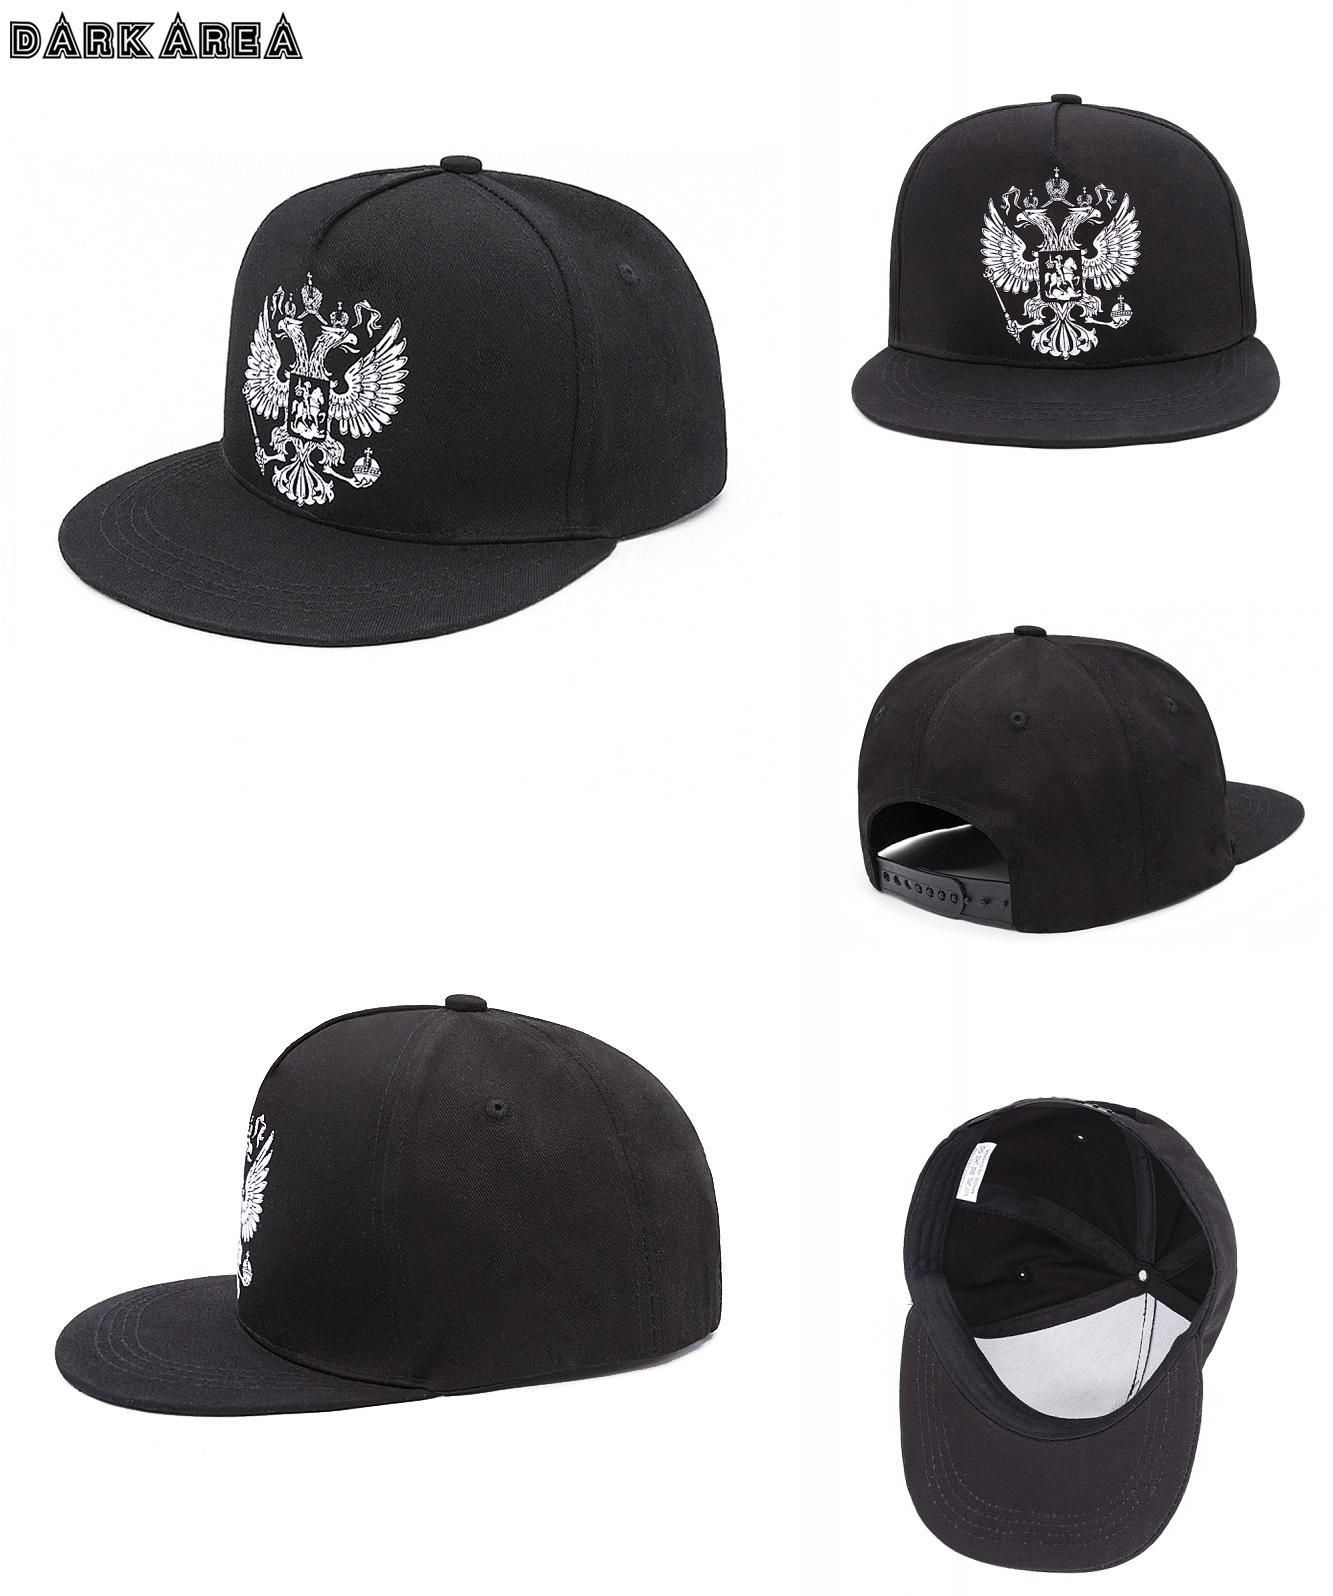 8b736d0b3c8  Visit to Buy  2017 New Russia King Snapback Caps Baseball Cap Hip Hop Hat